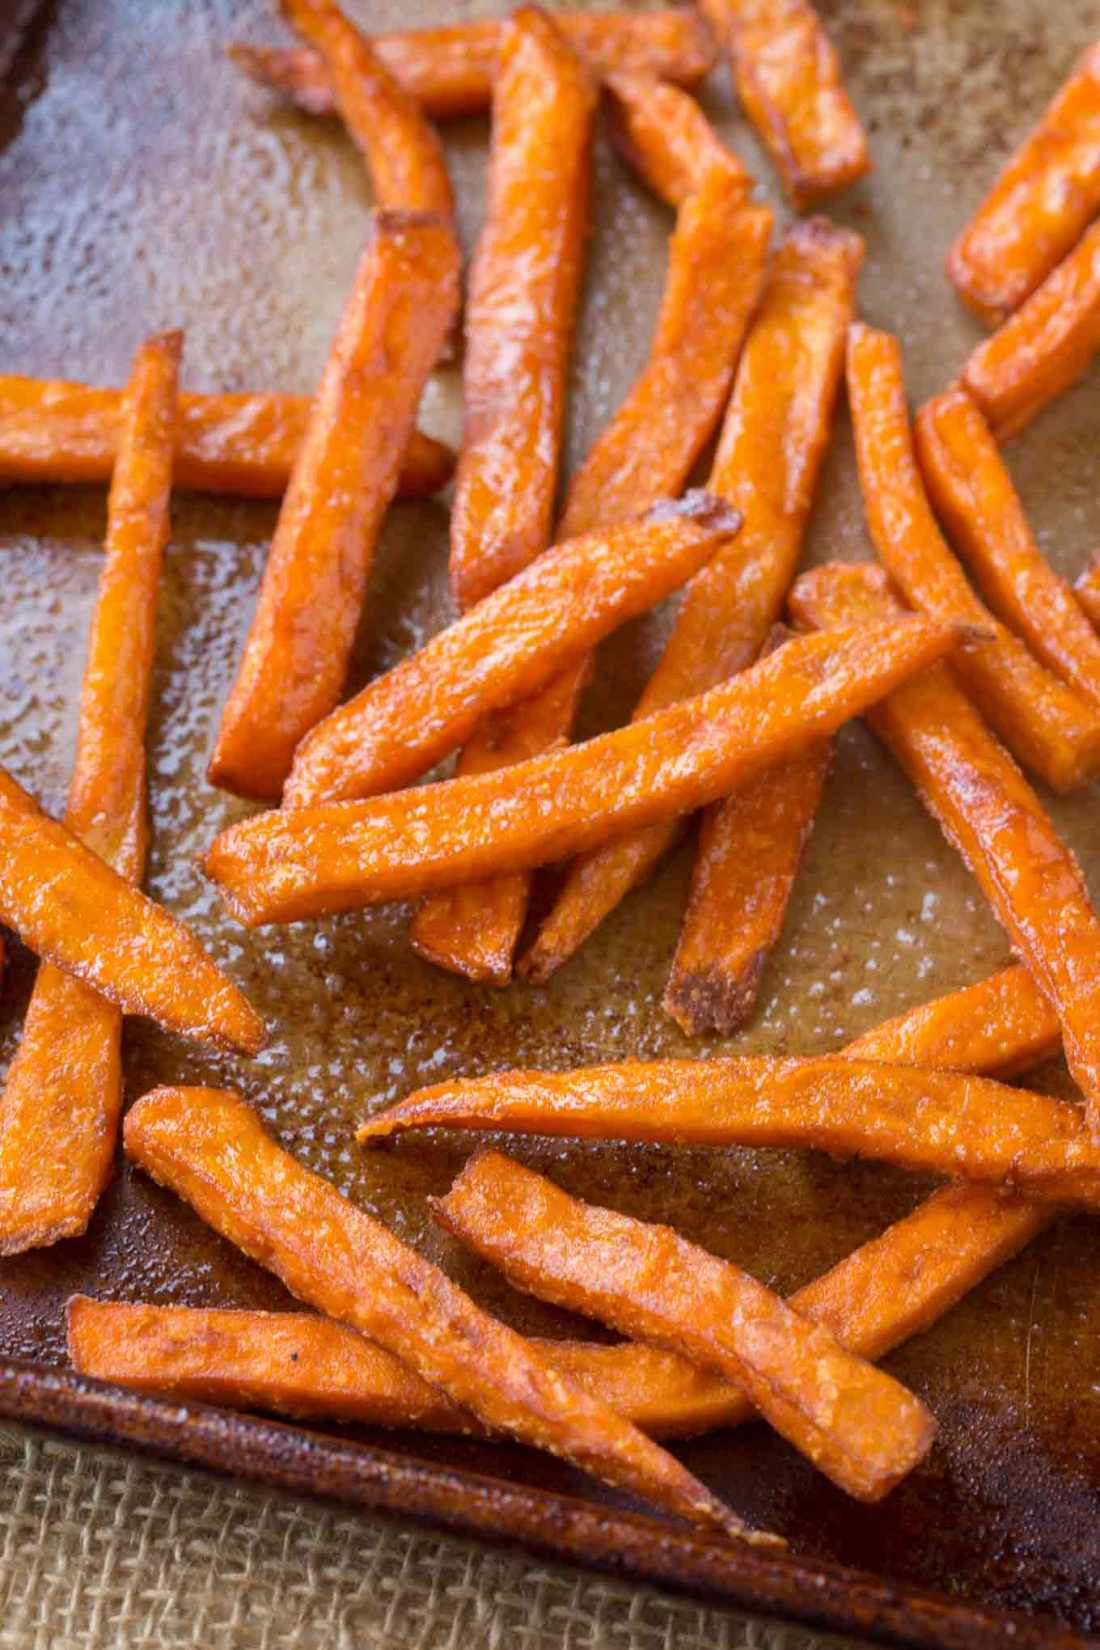 Oven-Baked-Sweet-Potato-Fries-3